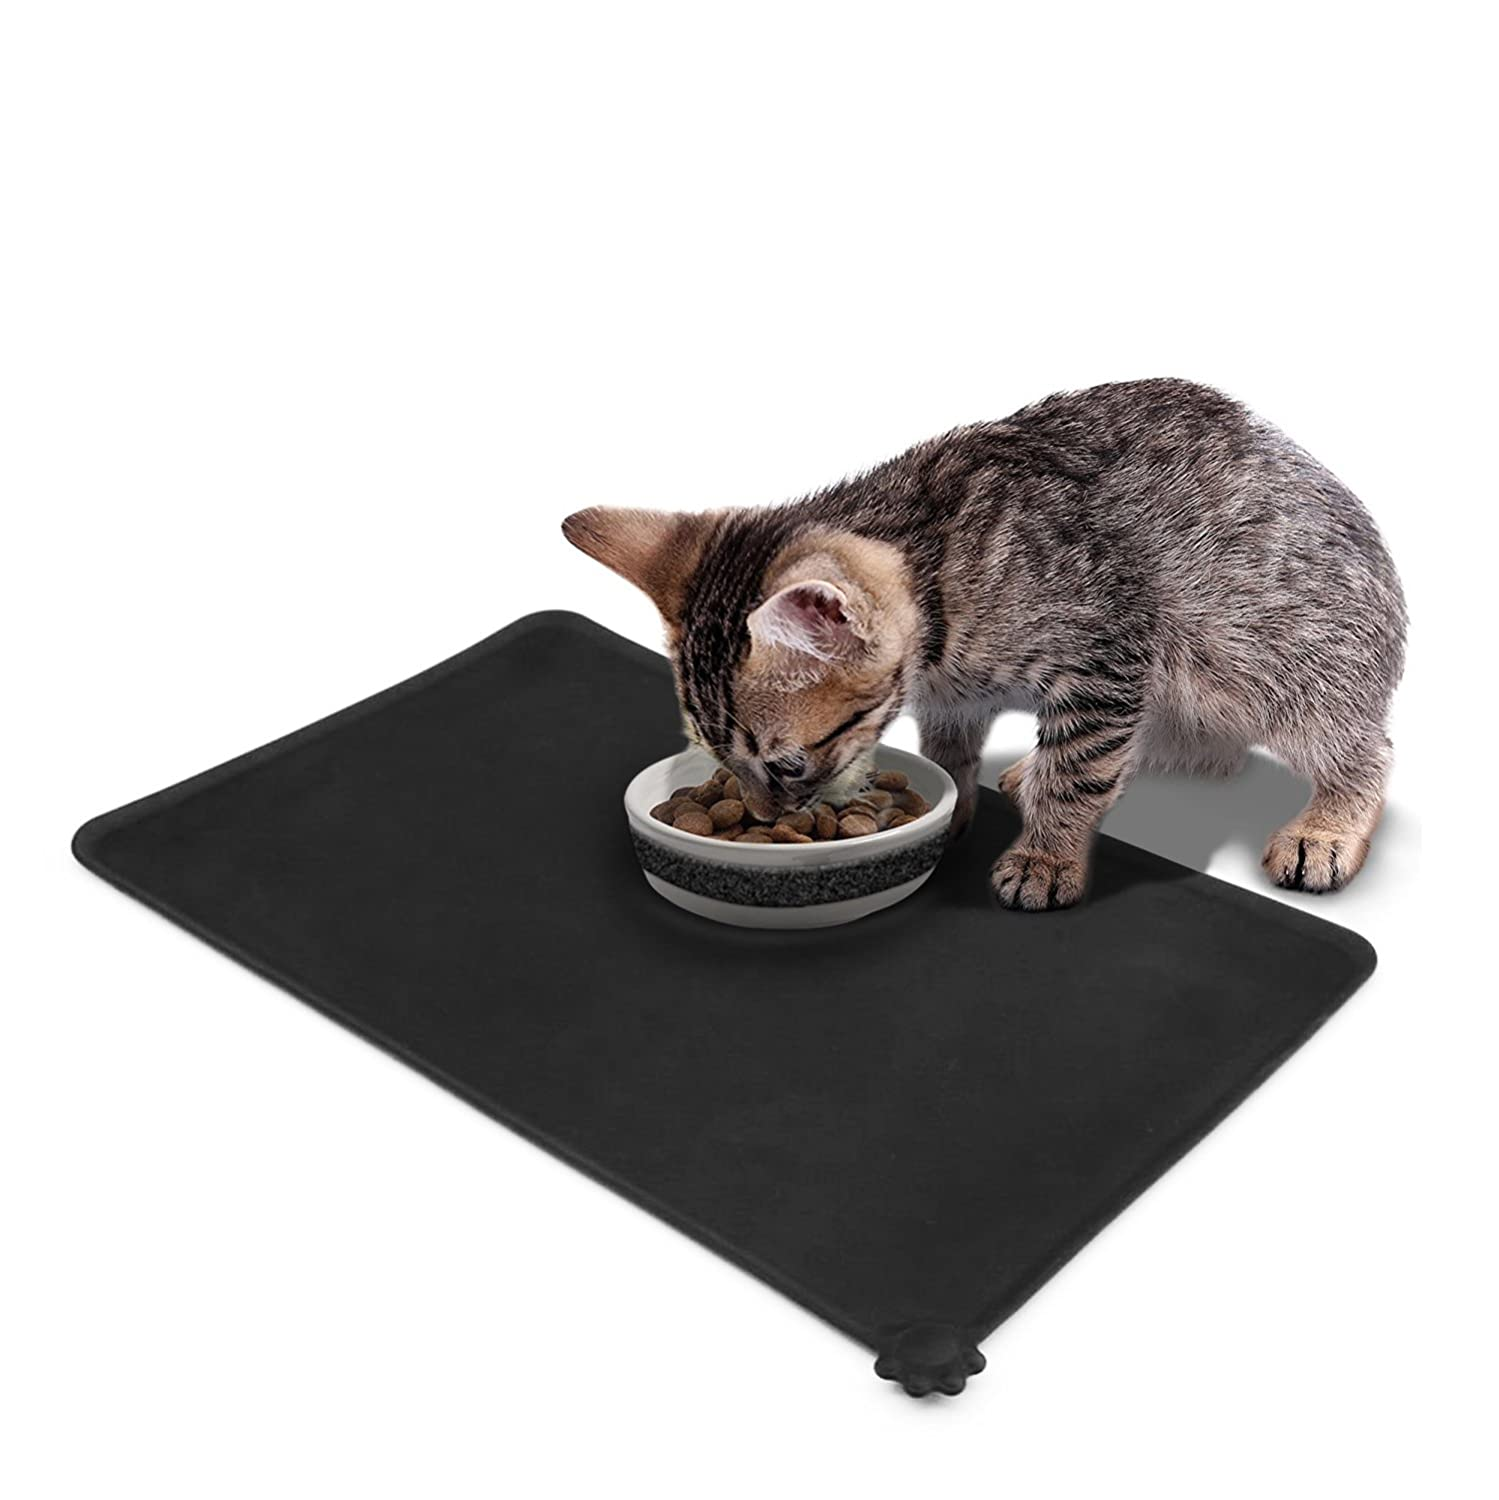 puppy food mats pet mat dhgate bowl pad cat product jcwatches placemat dog com from bed cute water dish feed silicone feeding